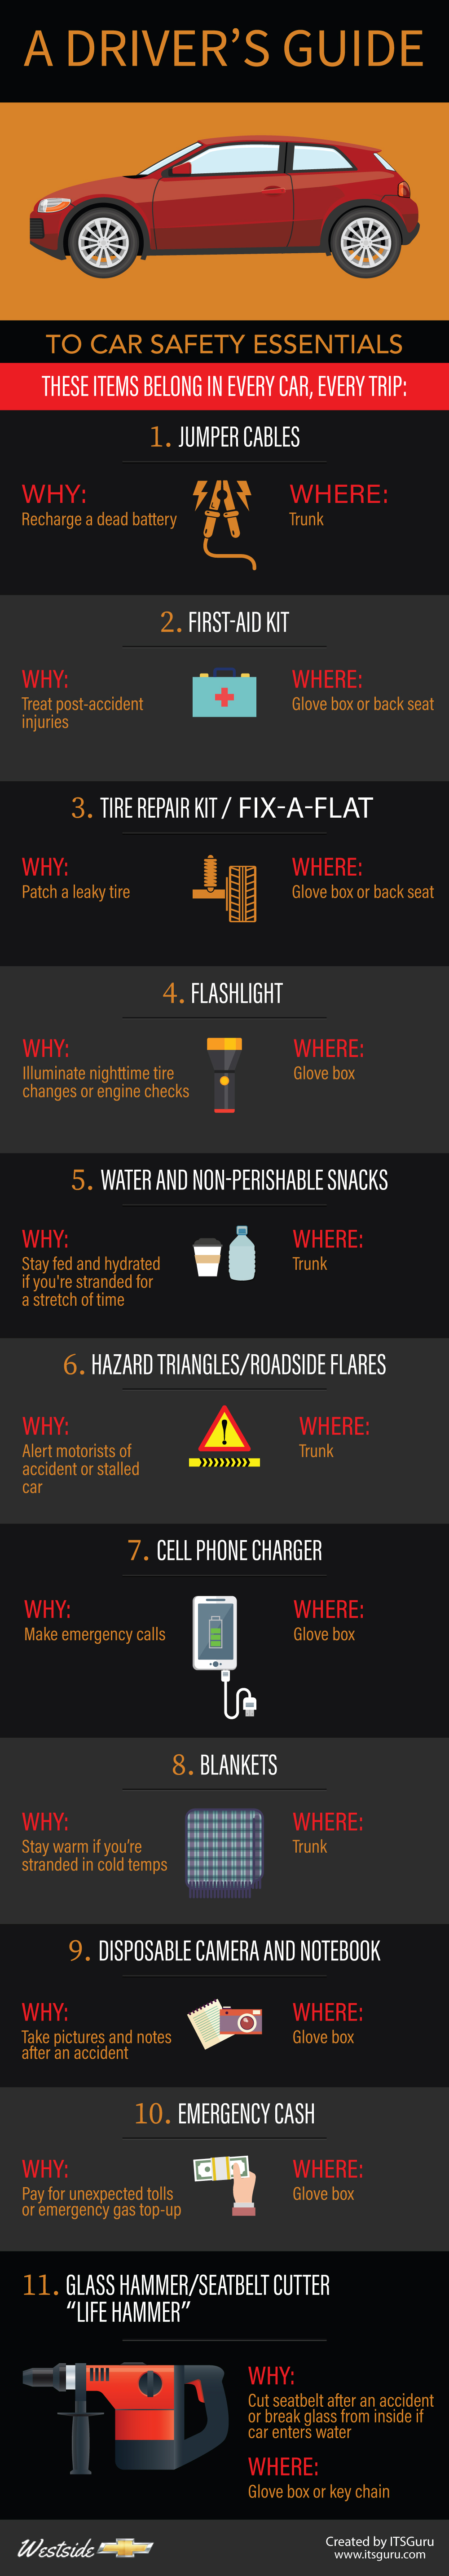 A Drivers Guide To Car Safety Essentials - Westside Chevrolet